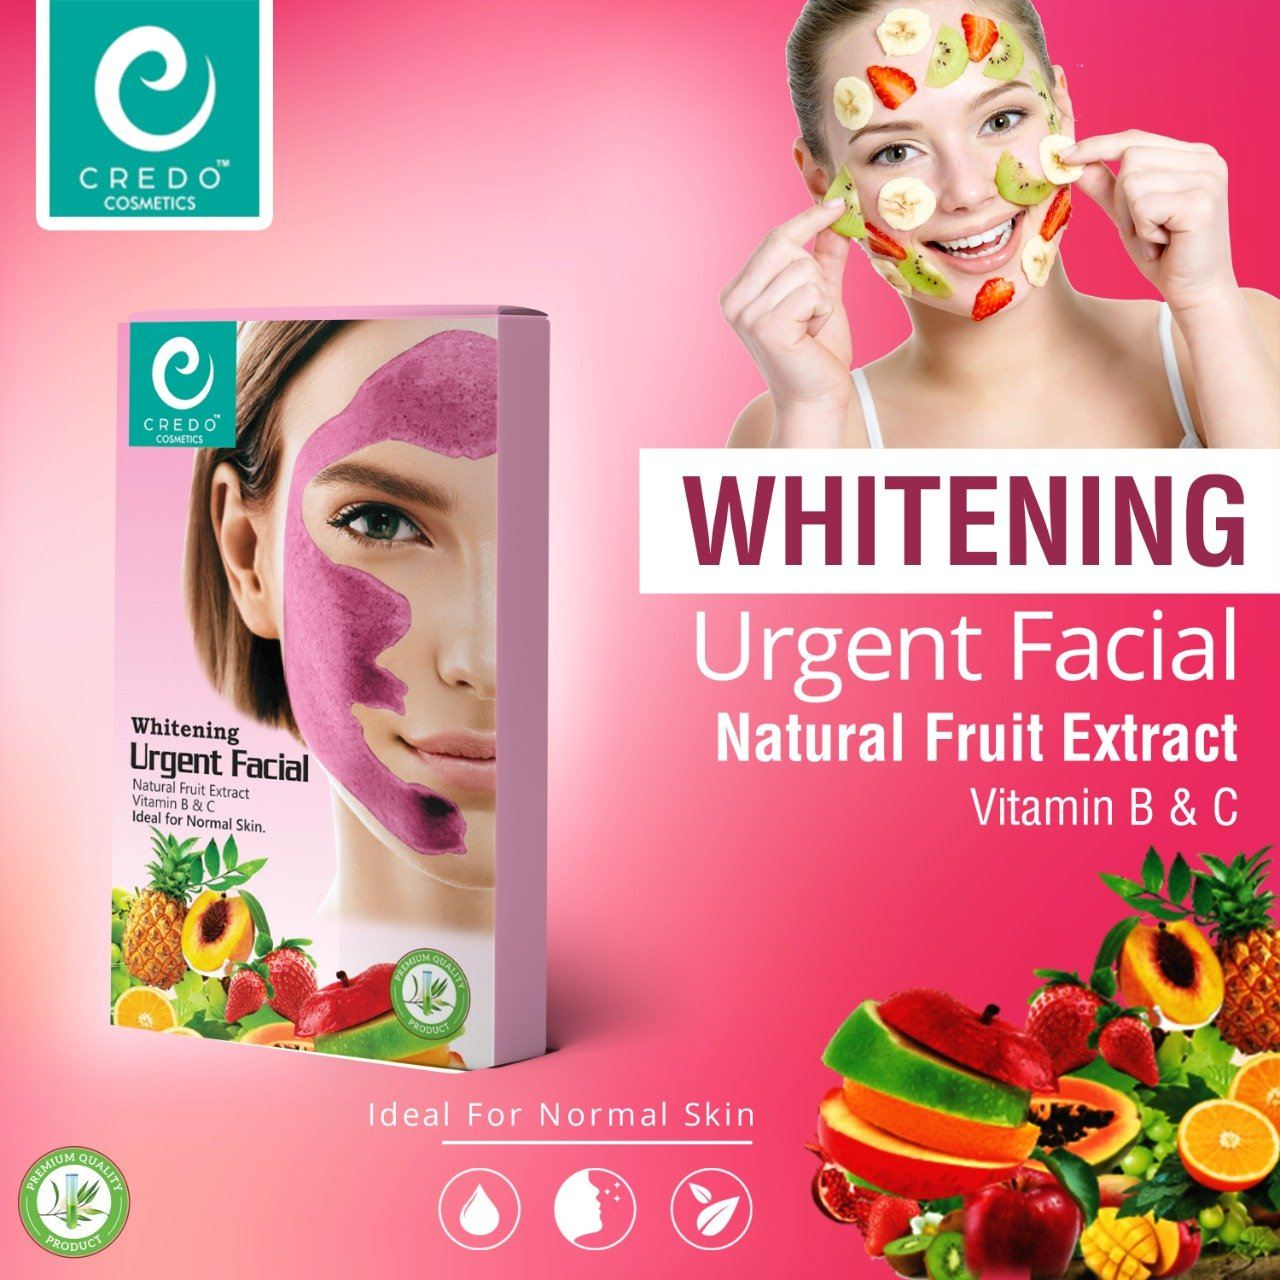 Credo Whitening Urgent Facial Health & Beauty Credo Cosmetics